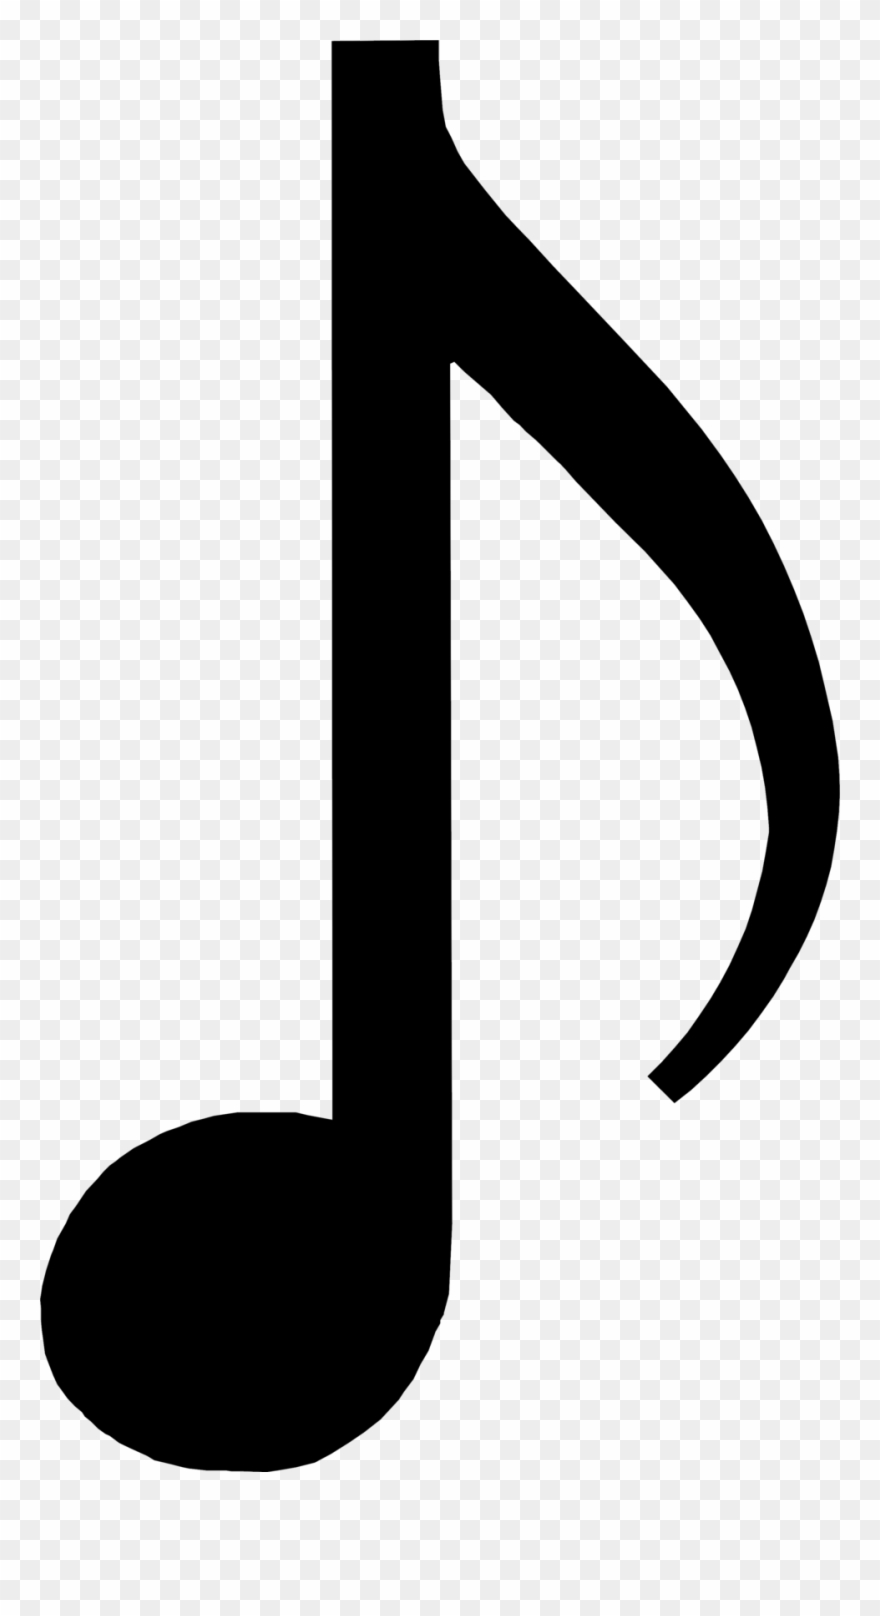 Clipart music symbol clip art transparent Svg Freeuse Download Clipart Music Notes Free - Music Note ... clip art transparent